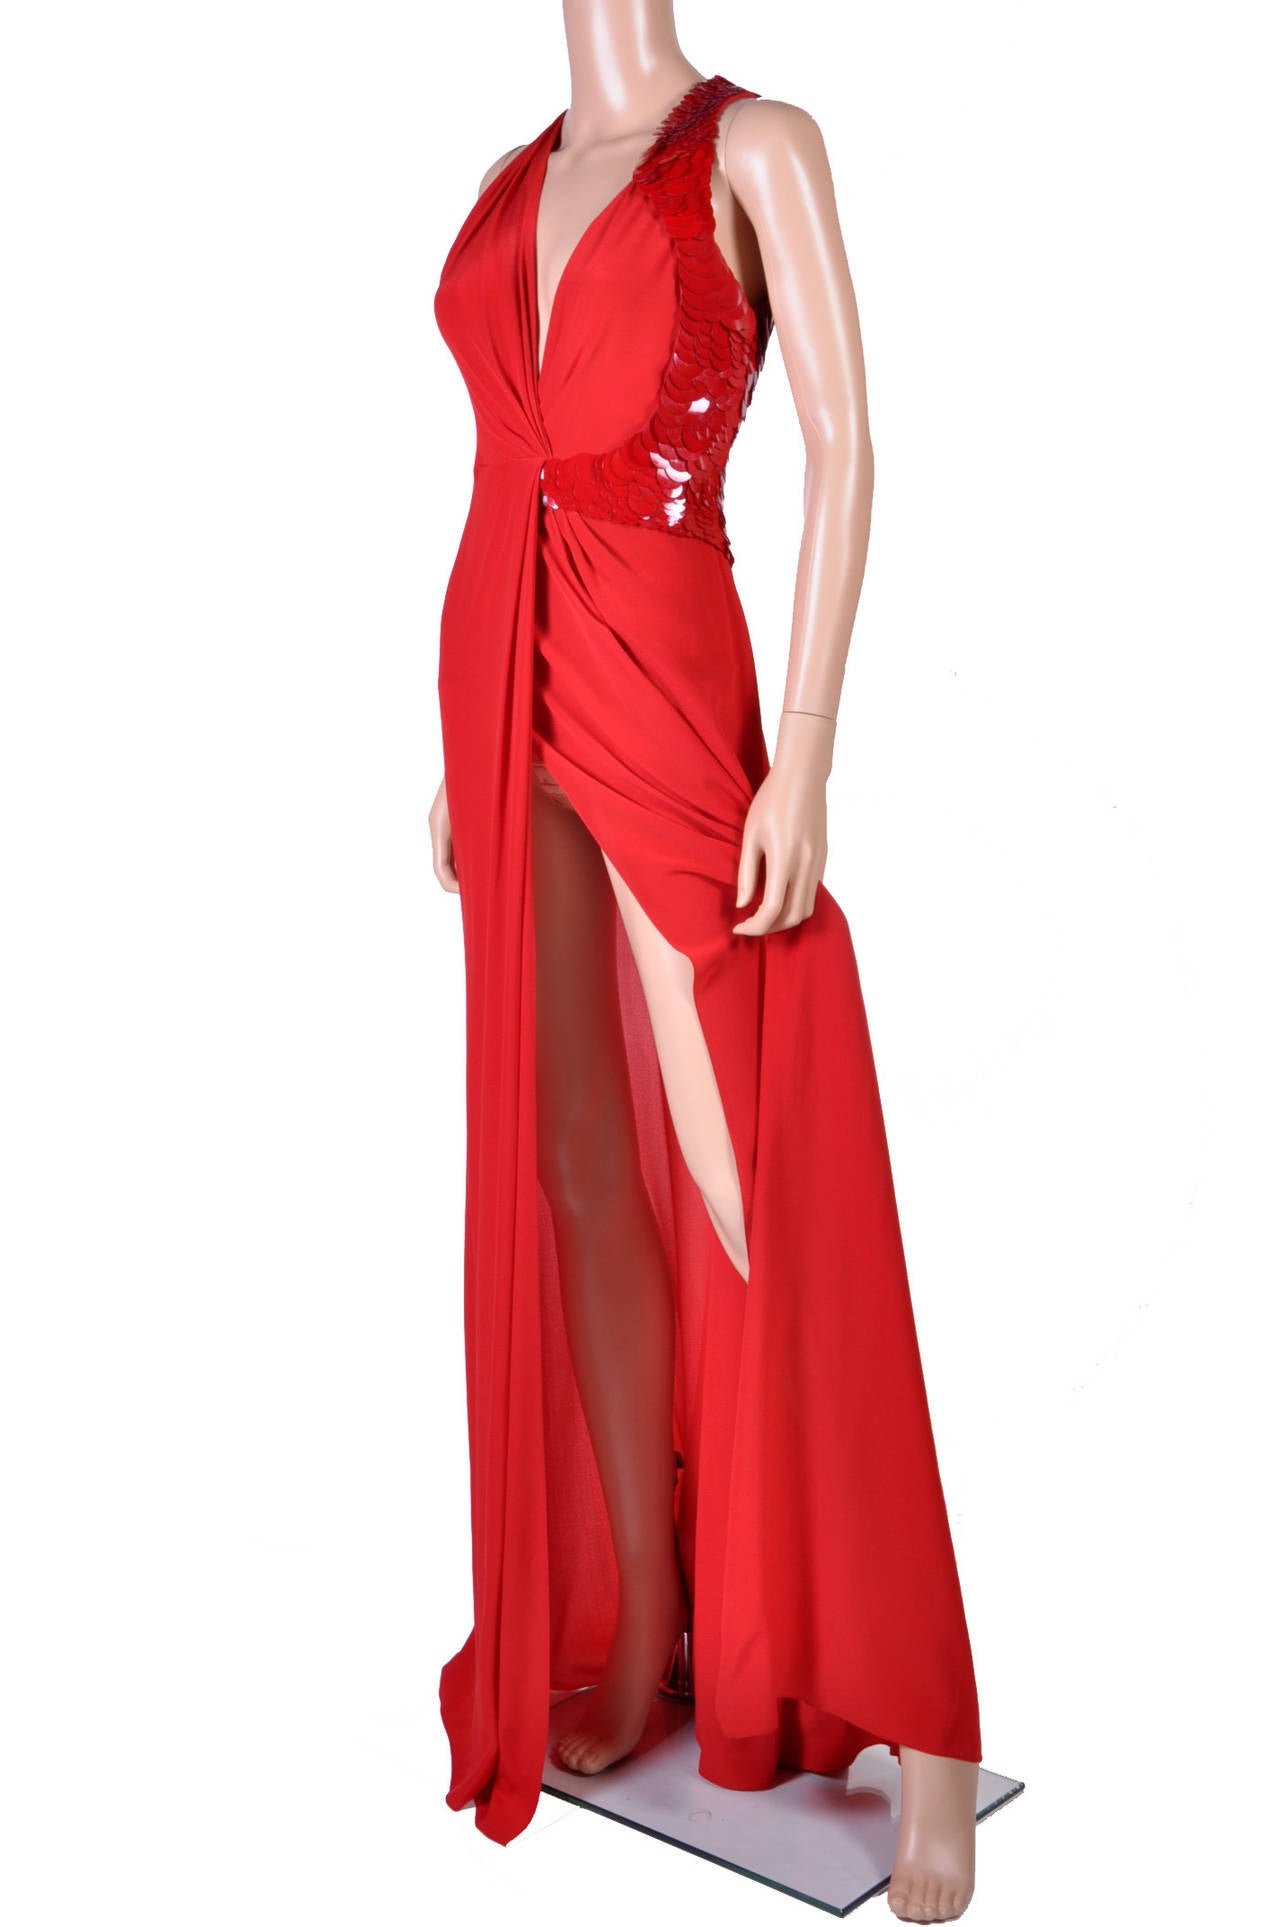 VERSACE Embellished Red Silk Gown on Emmy's list of the most iconic! 3